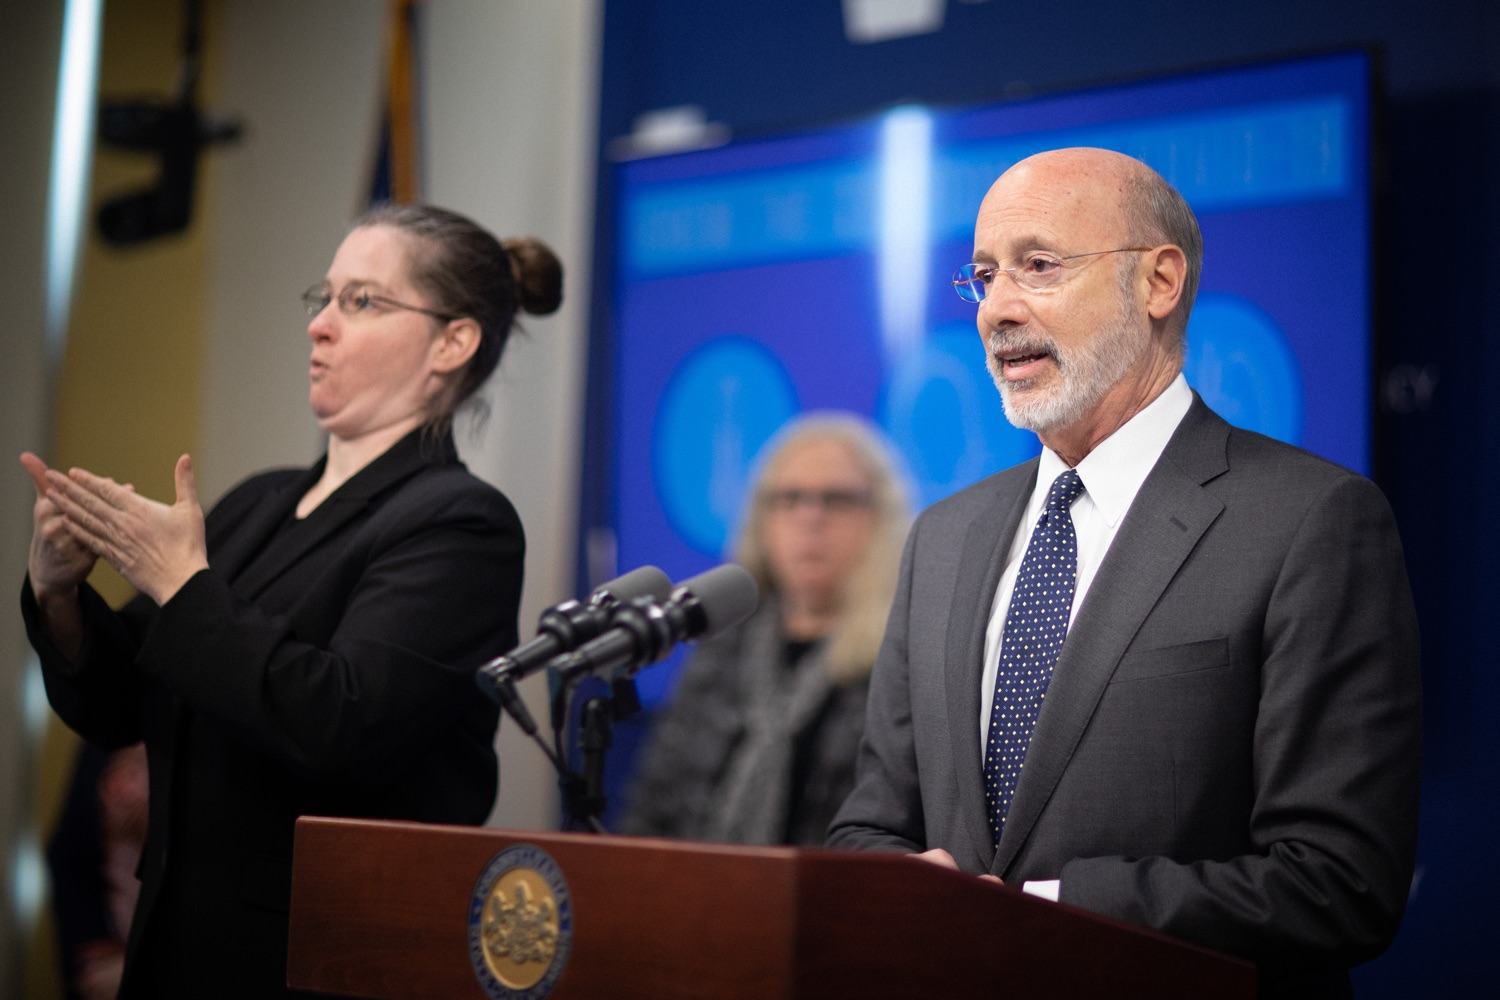 """<a href=""""https://filesource.wostreaming.net/commonwealthofpa/photo/17888_gov_covid19_update_dz_0018.jpg"""" target=""""_blank"""">⇣Download Photo<br></a>Governor Tom Wolf  speaking to reporters. Governor Tom Wolf and Secretary of Health Dr. Rachel Levine provided an update on the coronavirus known as COVID-19 and outline ongoing efforts to mitigate the virus in Pennsylvania. The Department of Health anticipates that there will be more Pennsylvanians who test positive for COVID-19 in the coming days and weeks and it is important for residents to know the commonwealth is prepared and to be prepared themselves. People have a higher chance of testing positive for COVID-19 if they have traveled to a country or state with known community outbreaks or have come in contact with someone who has the virus. The Wolf Administration is working with the health care community across Pennsylvania to keep them informed, consult on patient testing, and ensure they have the resources they need to care for patients. .March 16, 2020  Harrisburg Pa."""